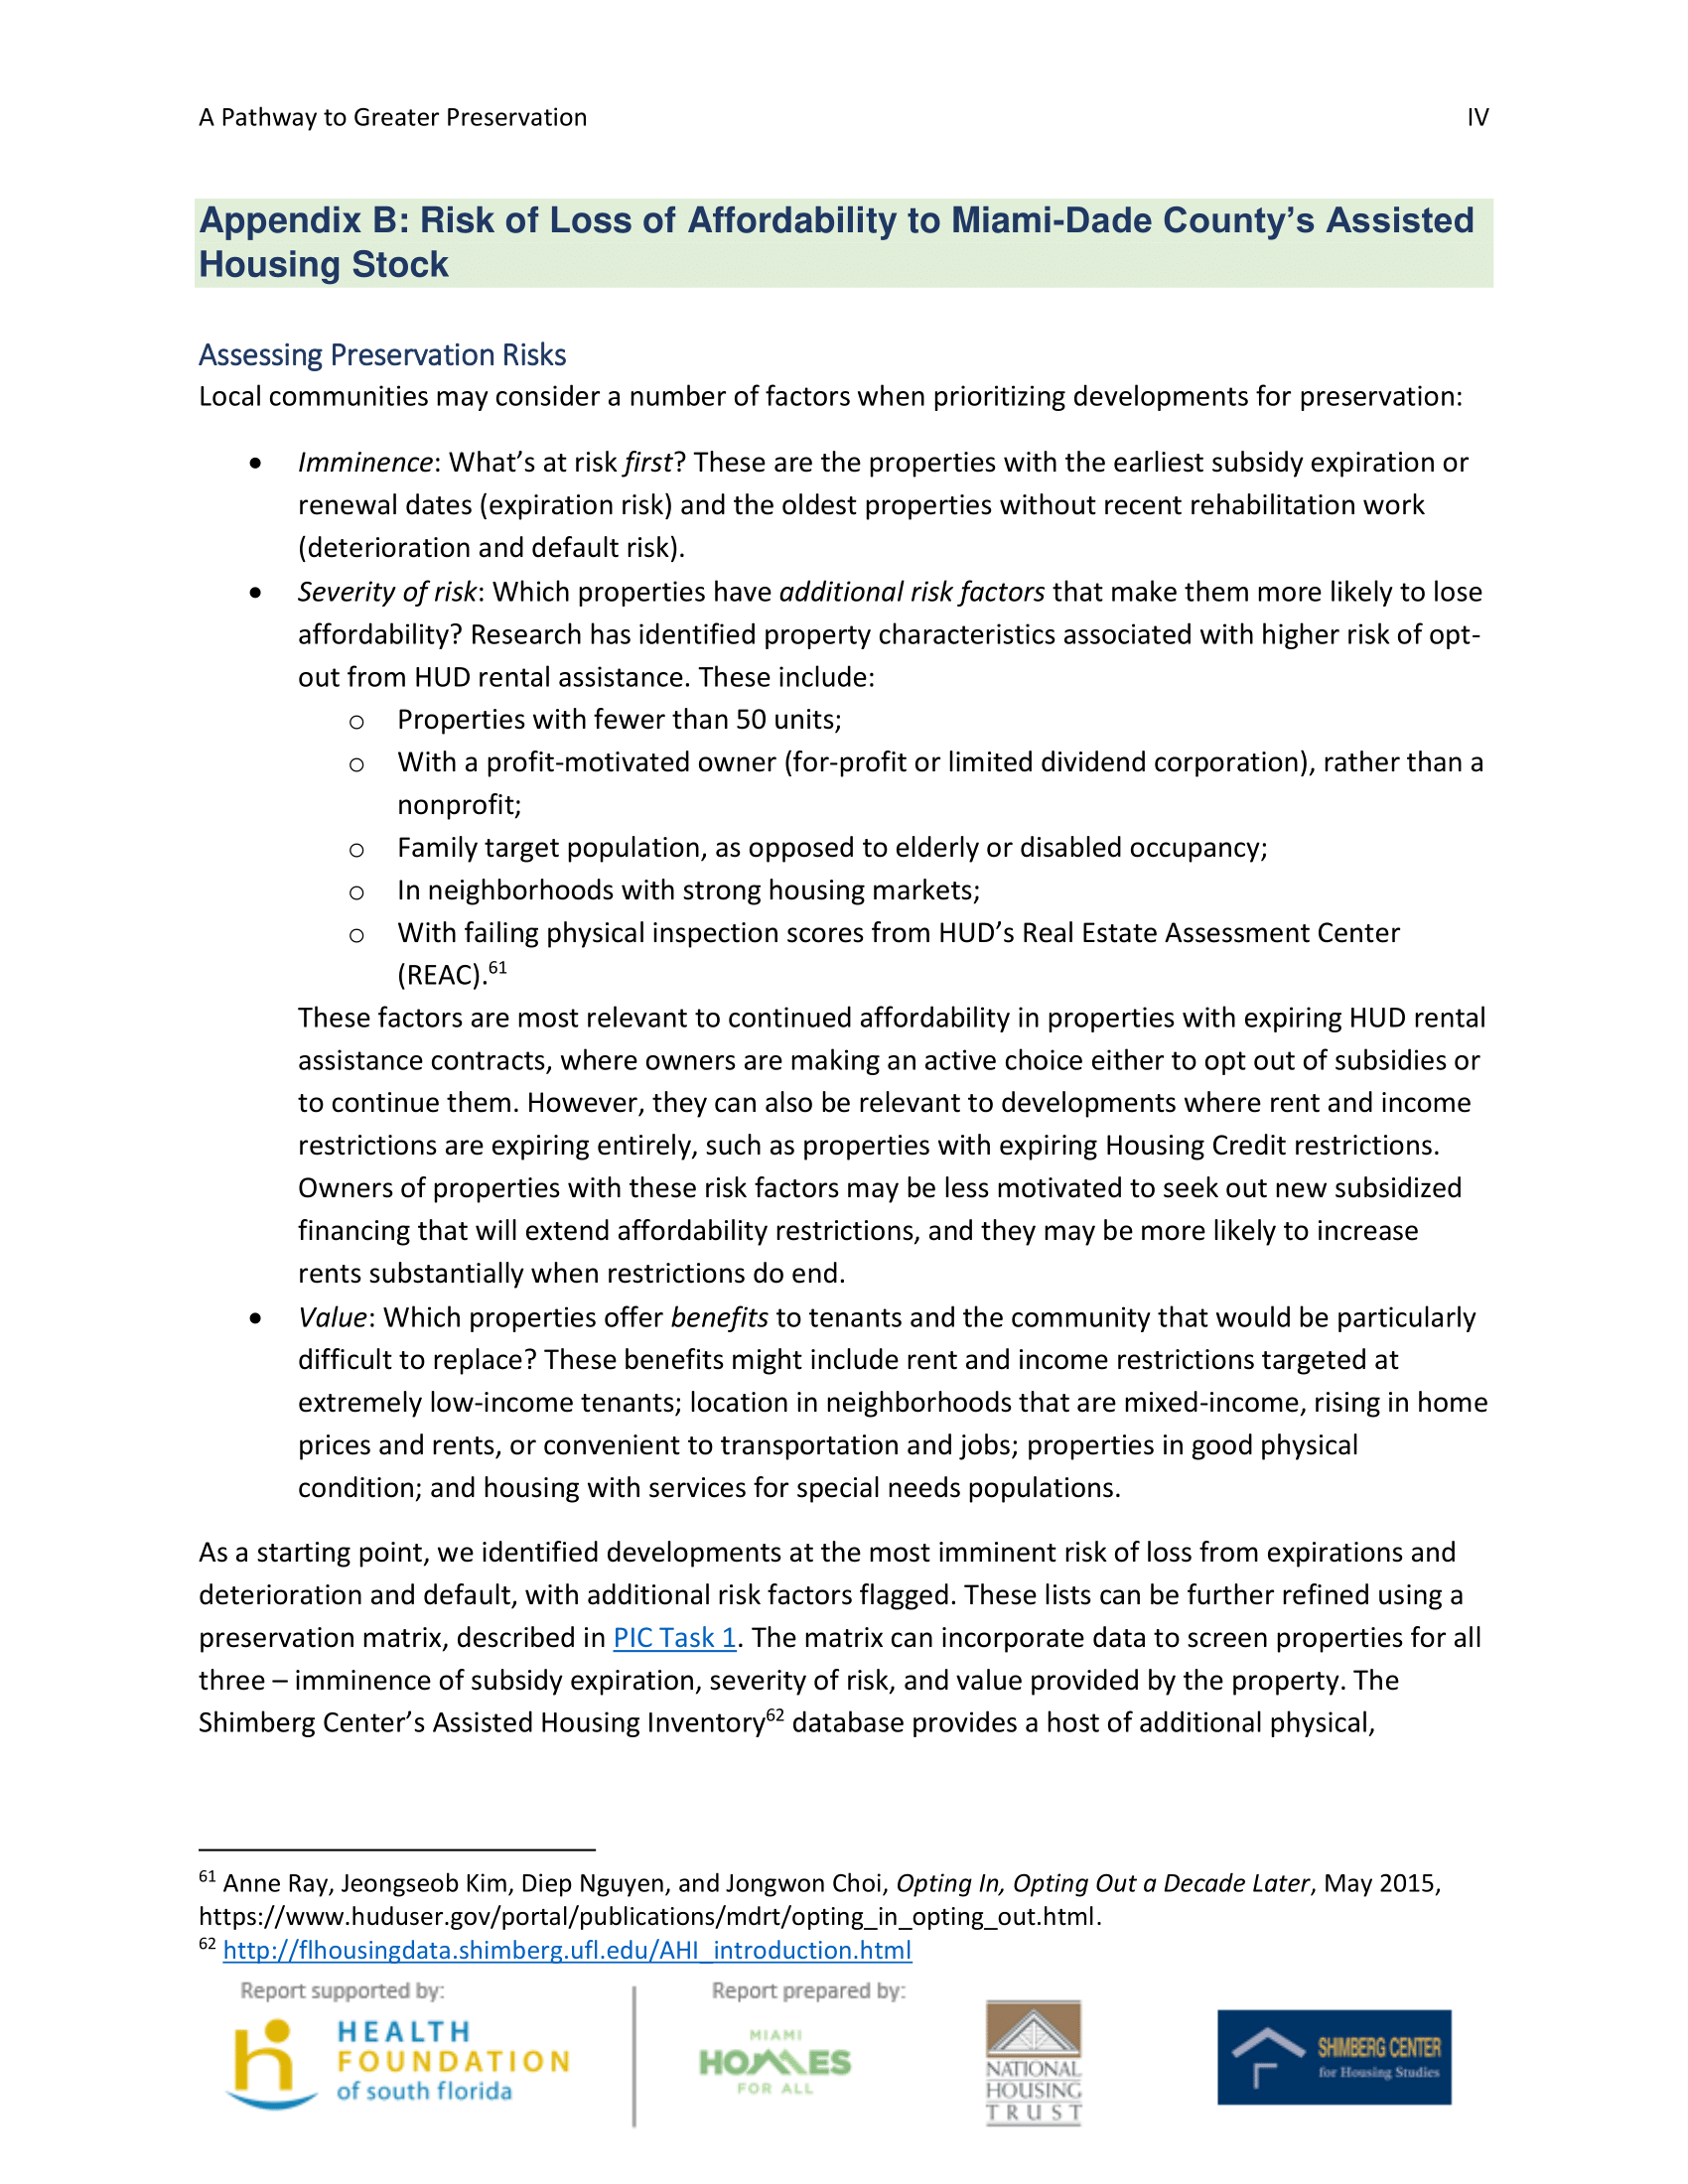 A Pathway to Greater Preservation - February 2018-50.png